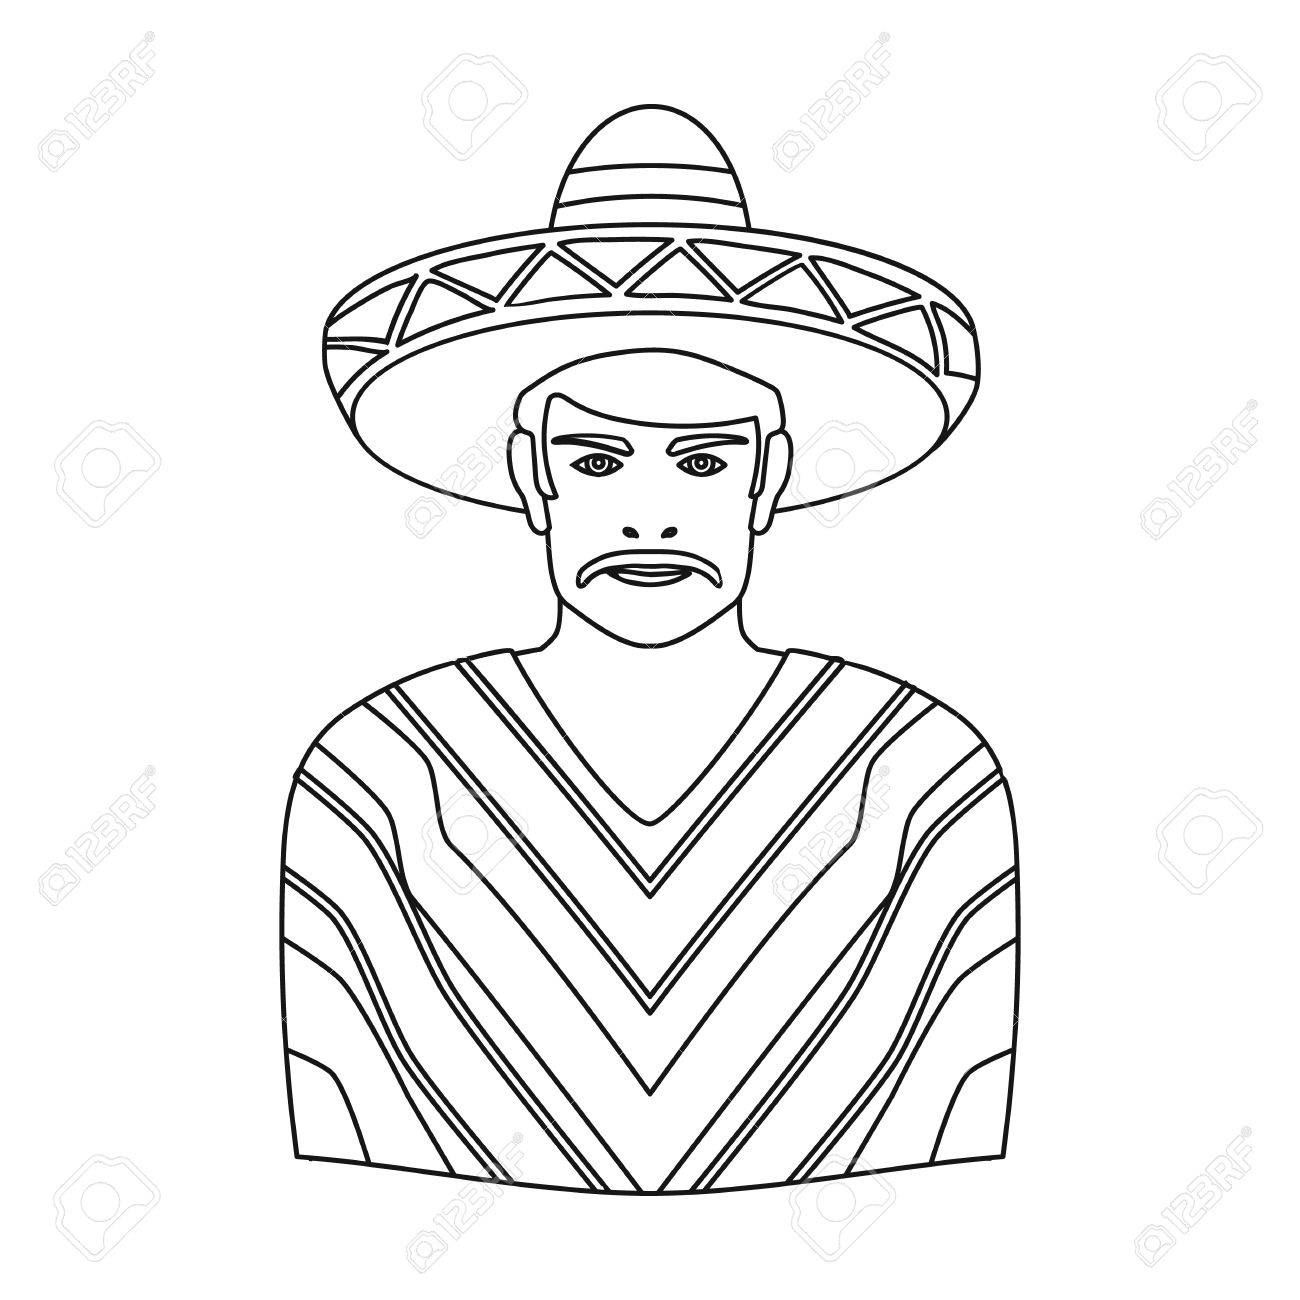 Sombrero Drawing At Getdrawings Com Free For Personal